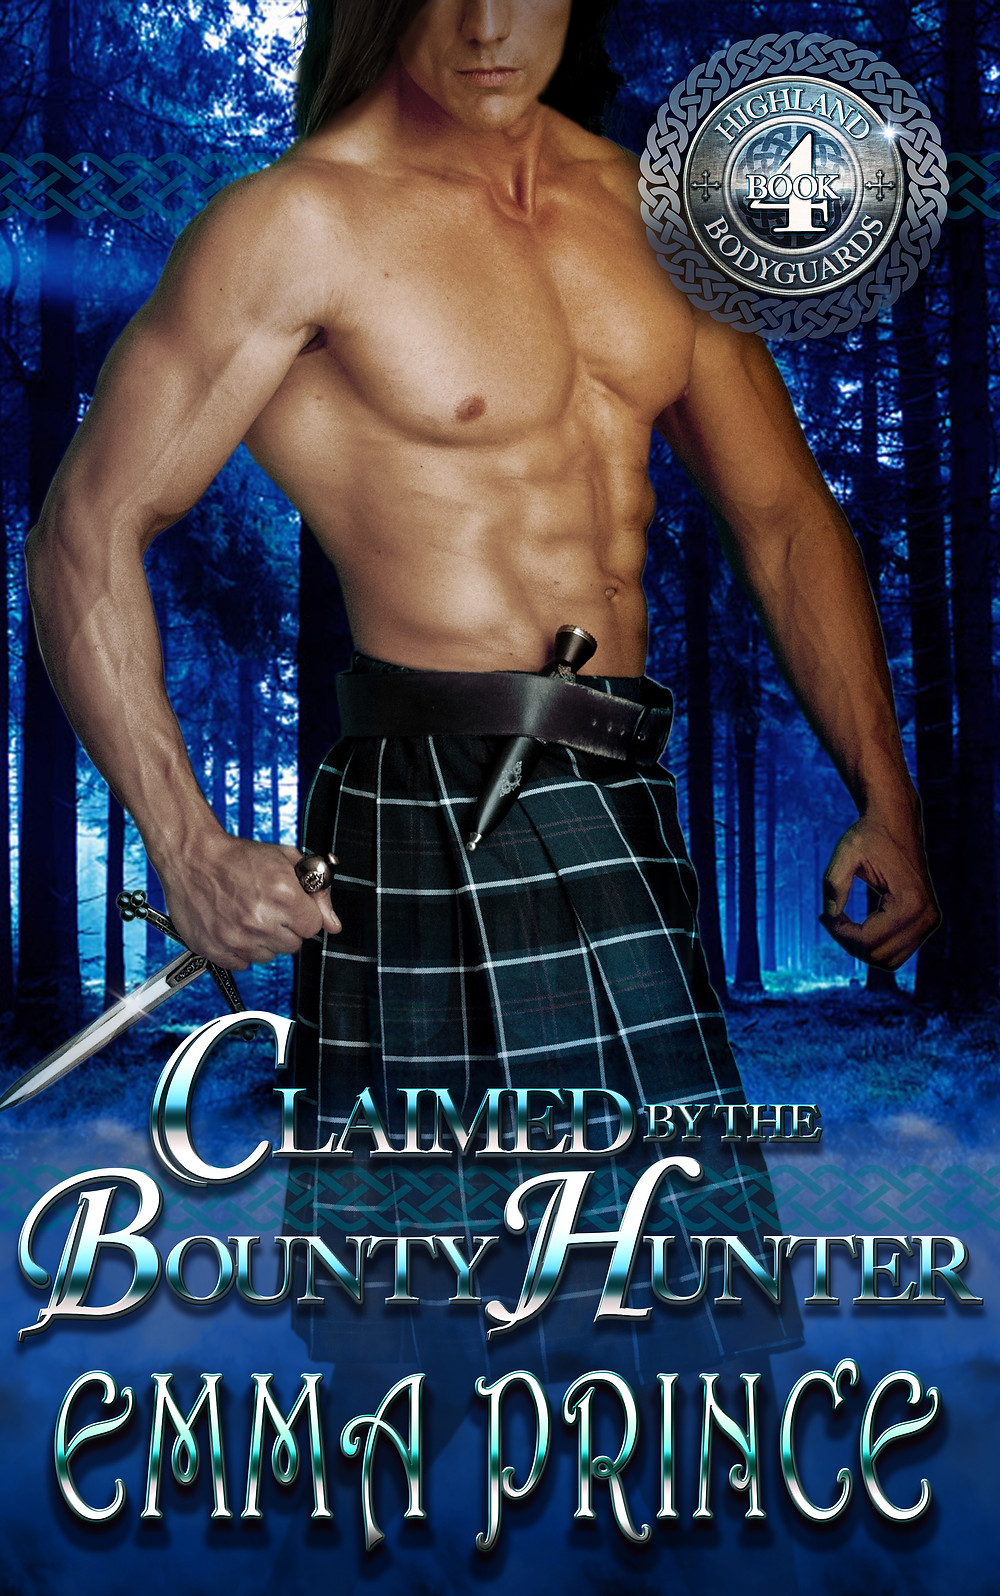 CLAIMED BY THE BOUNTY HUNTER by Emma Prince